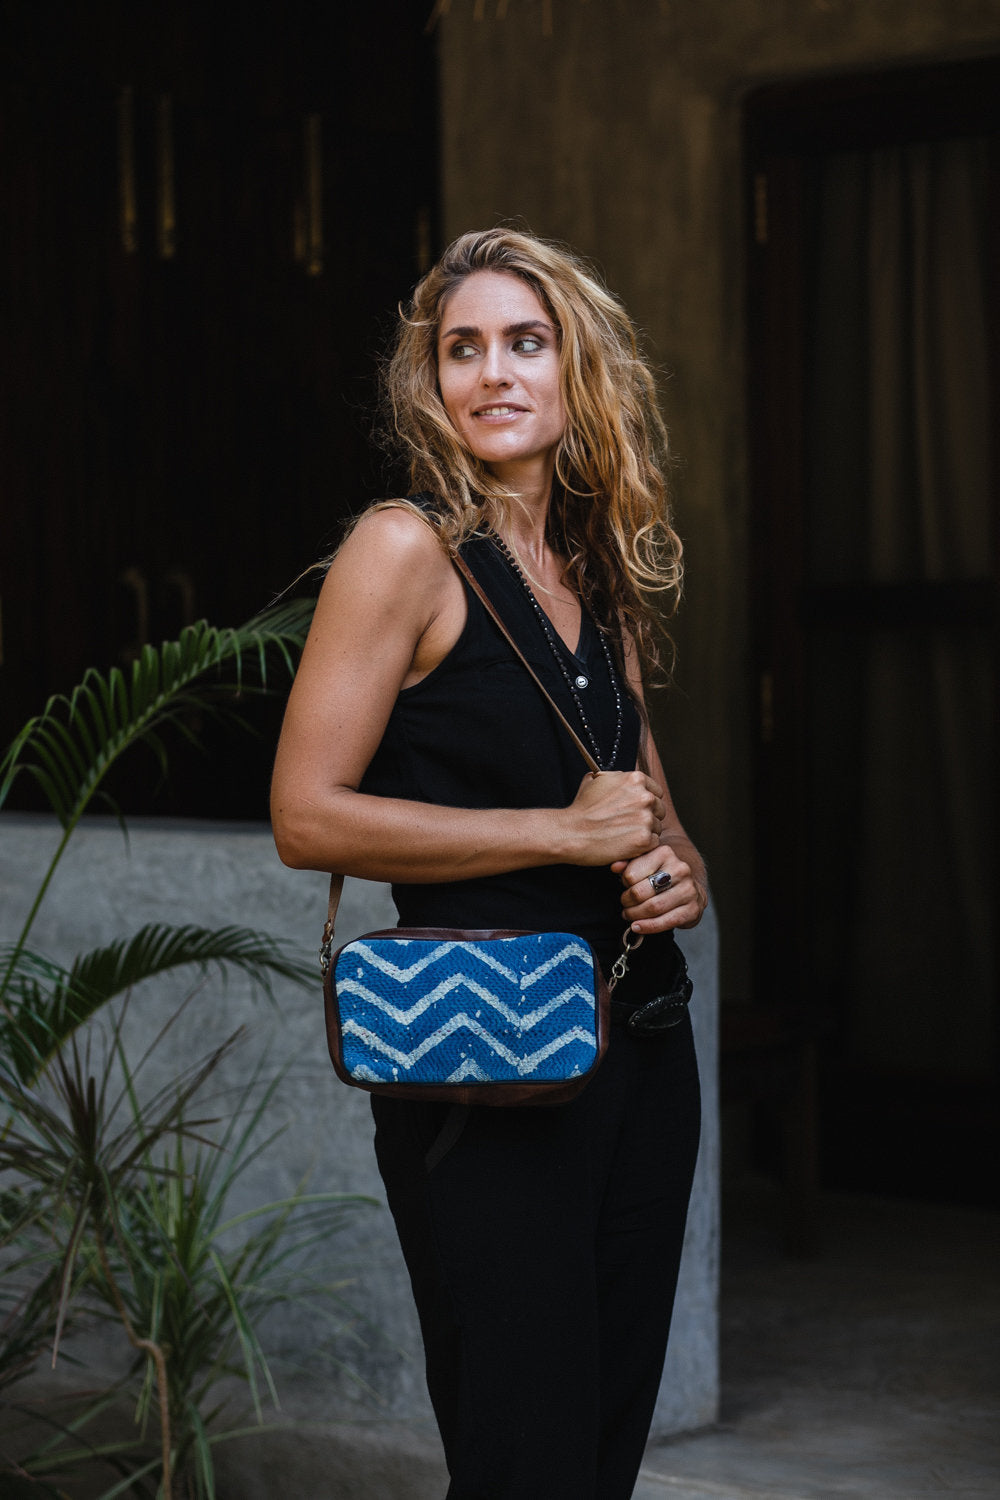 OPHELIA CROSSBODY HANDBAG INDIGO AND WHITE